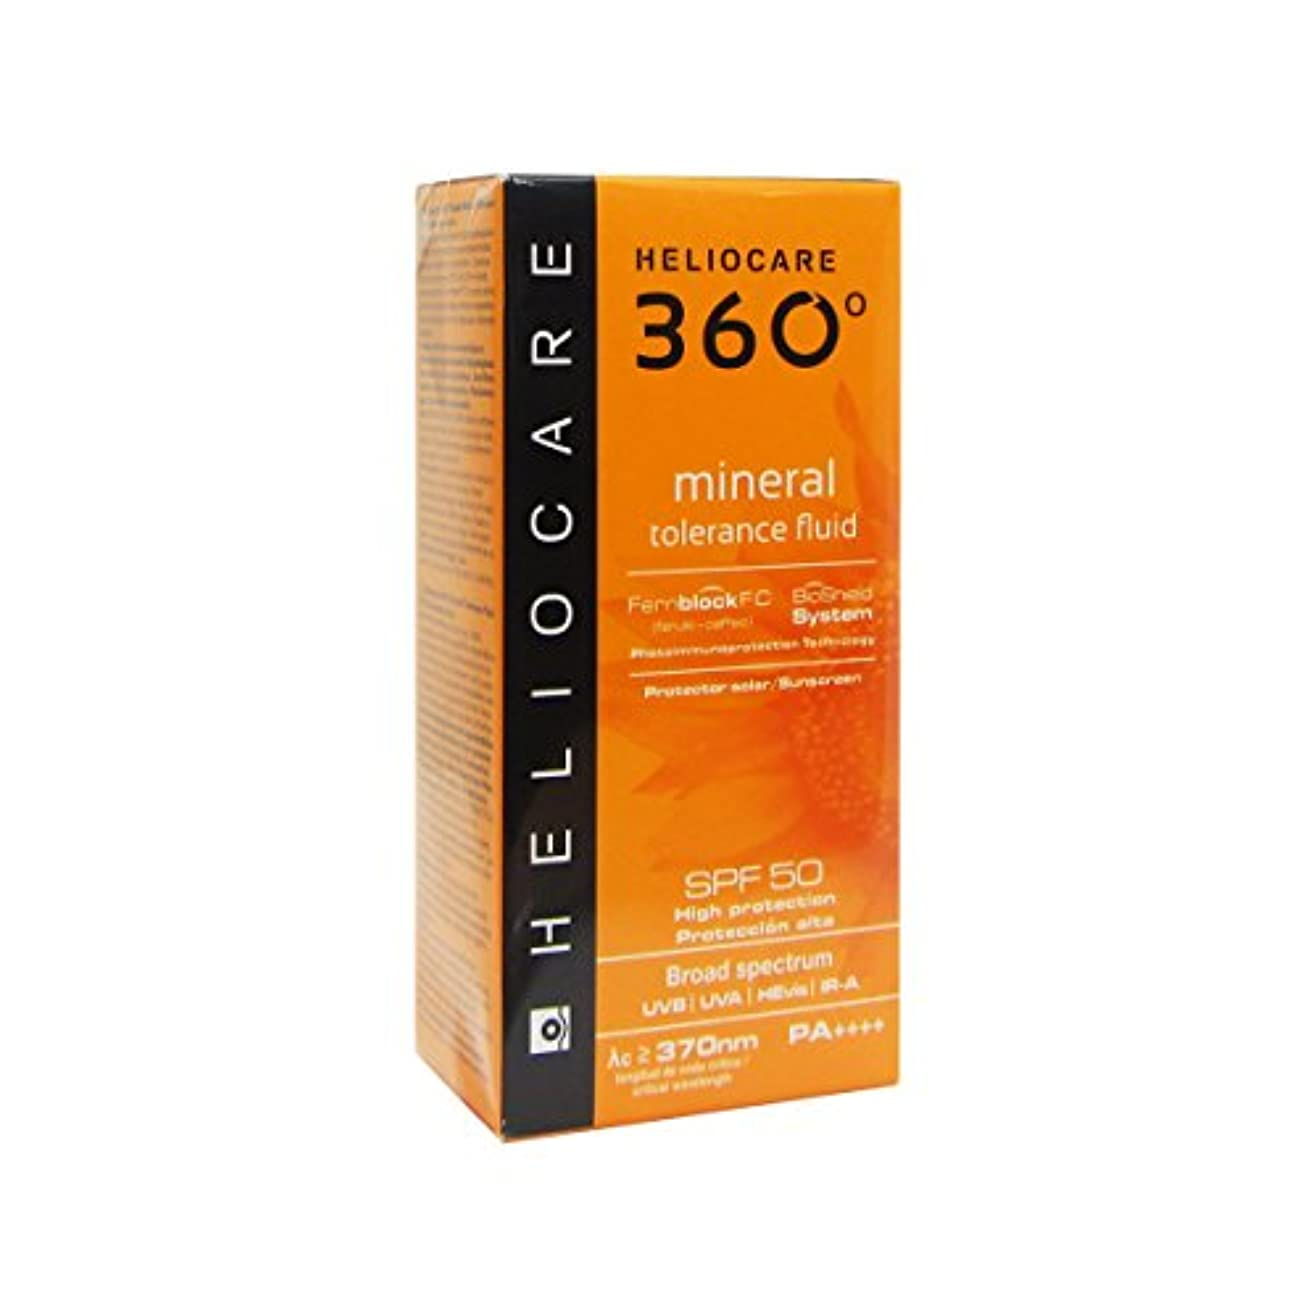 一回真剣に罪Heliocare 360 Mineral Tolerance Fluid Spf50 50ml [並行輸入品]